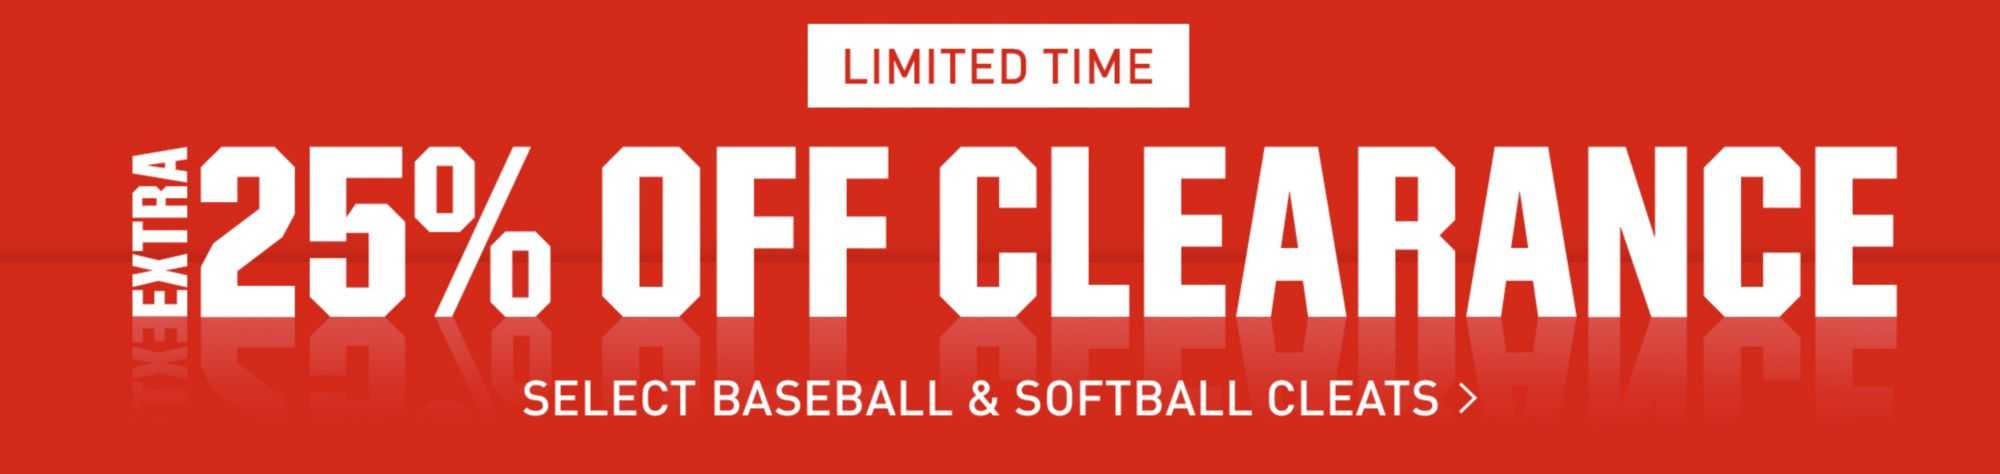 Take 25% Off Select Baseball & Softball Clearance